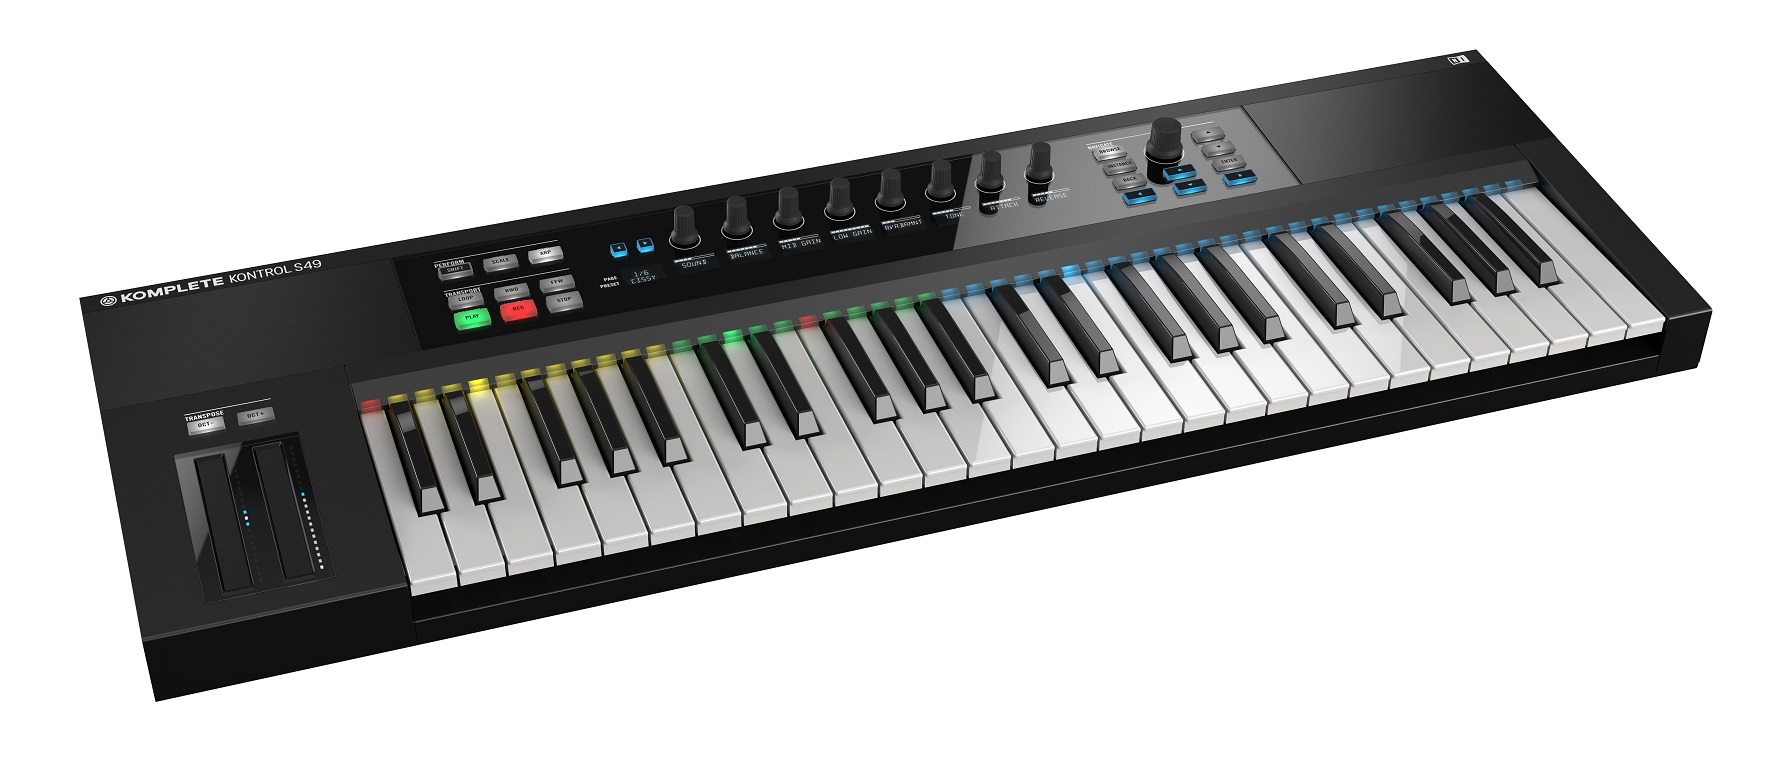 Billede af NativeInstruments KompleteKontrolS49 keyboard